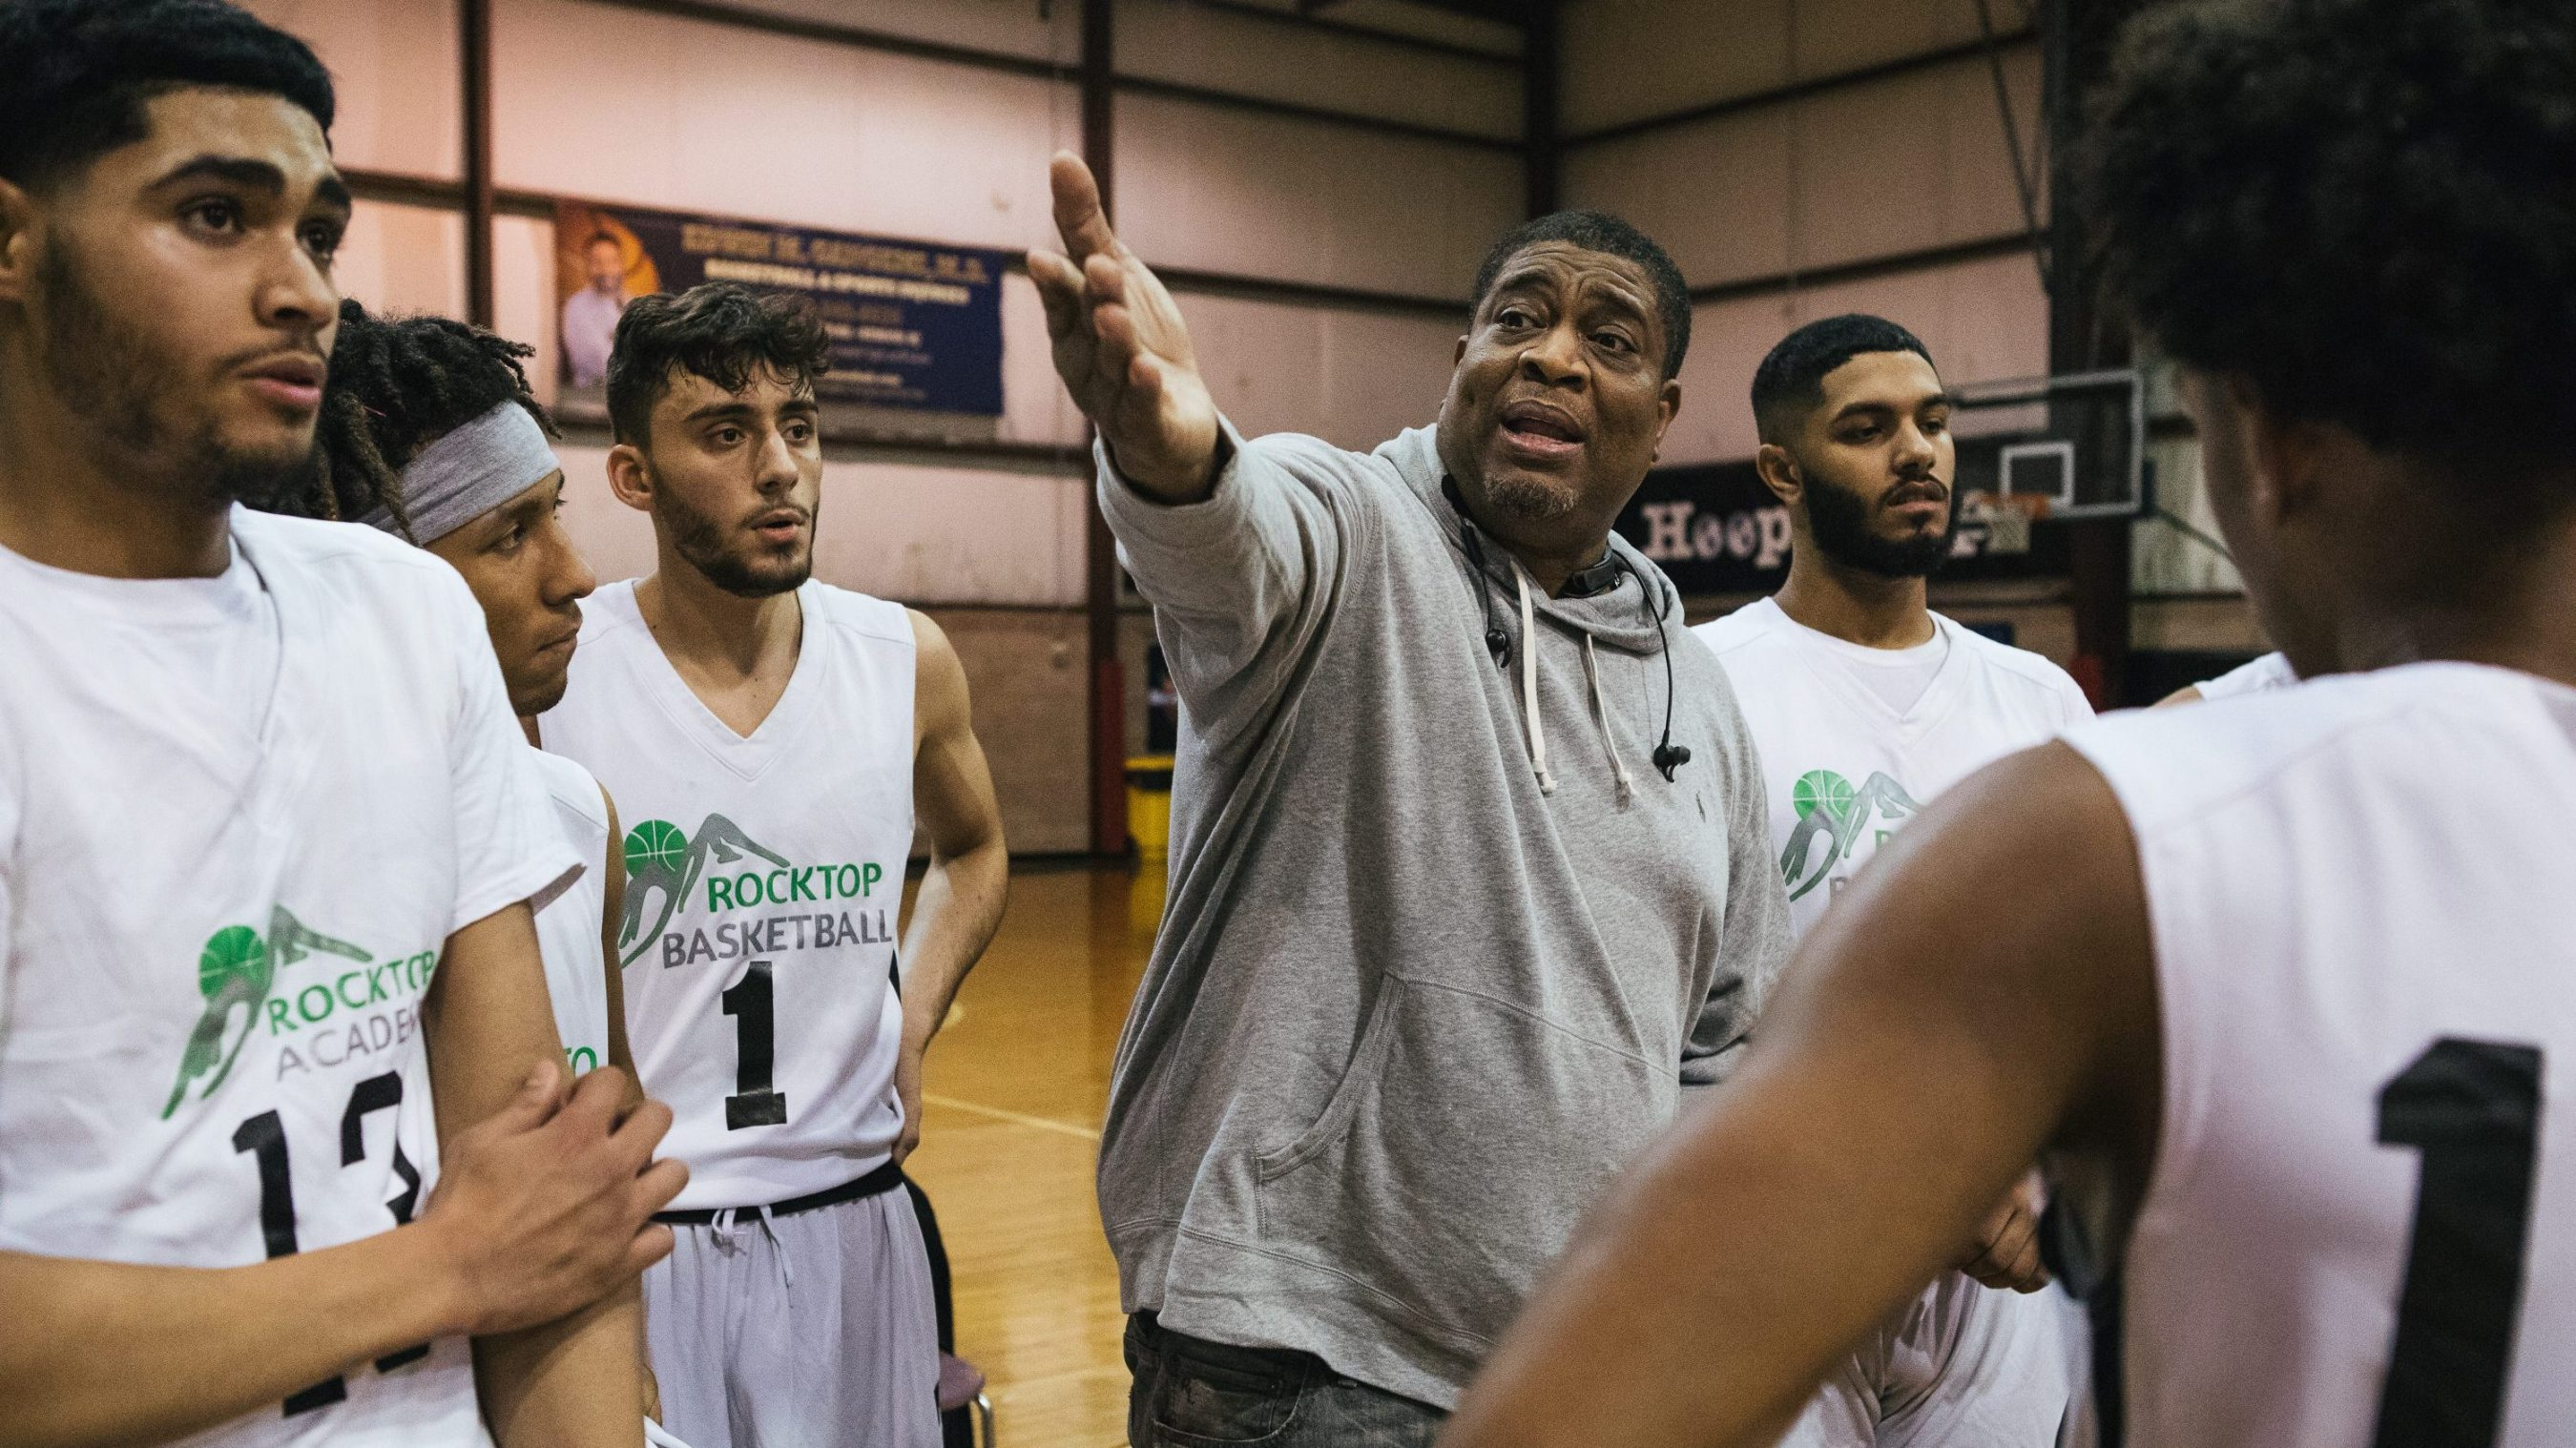 dc8b7bf8527670 A new breed of basketball school arises for high school grads trying to  catch on with a college team